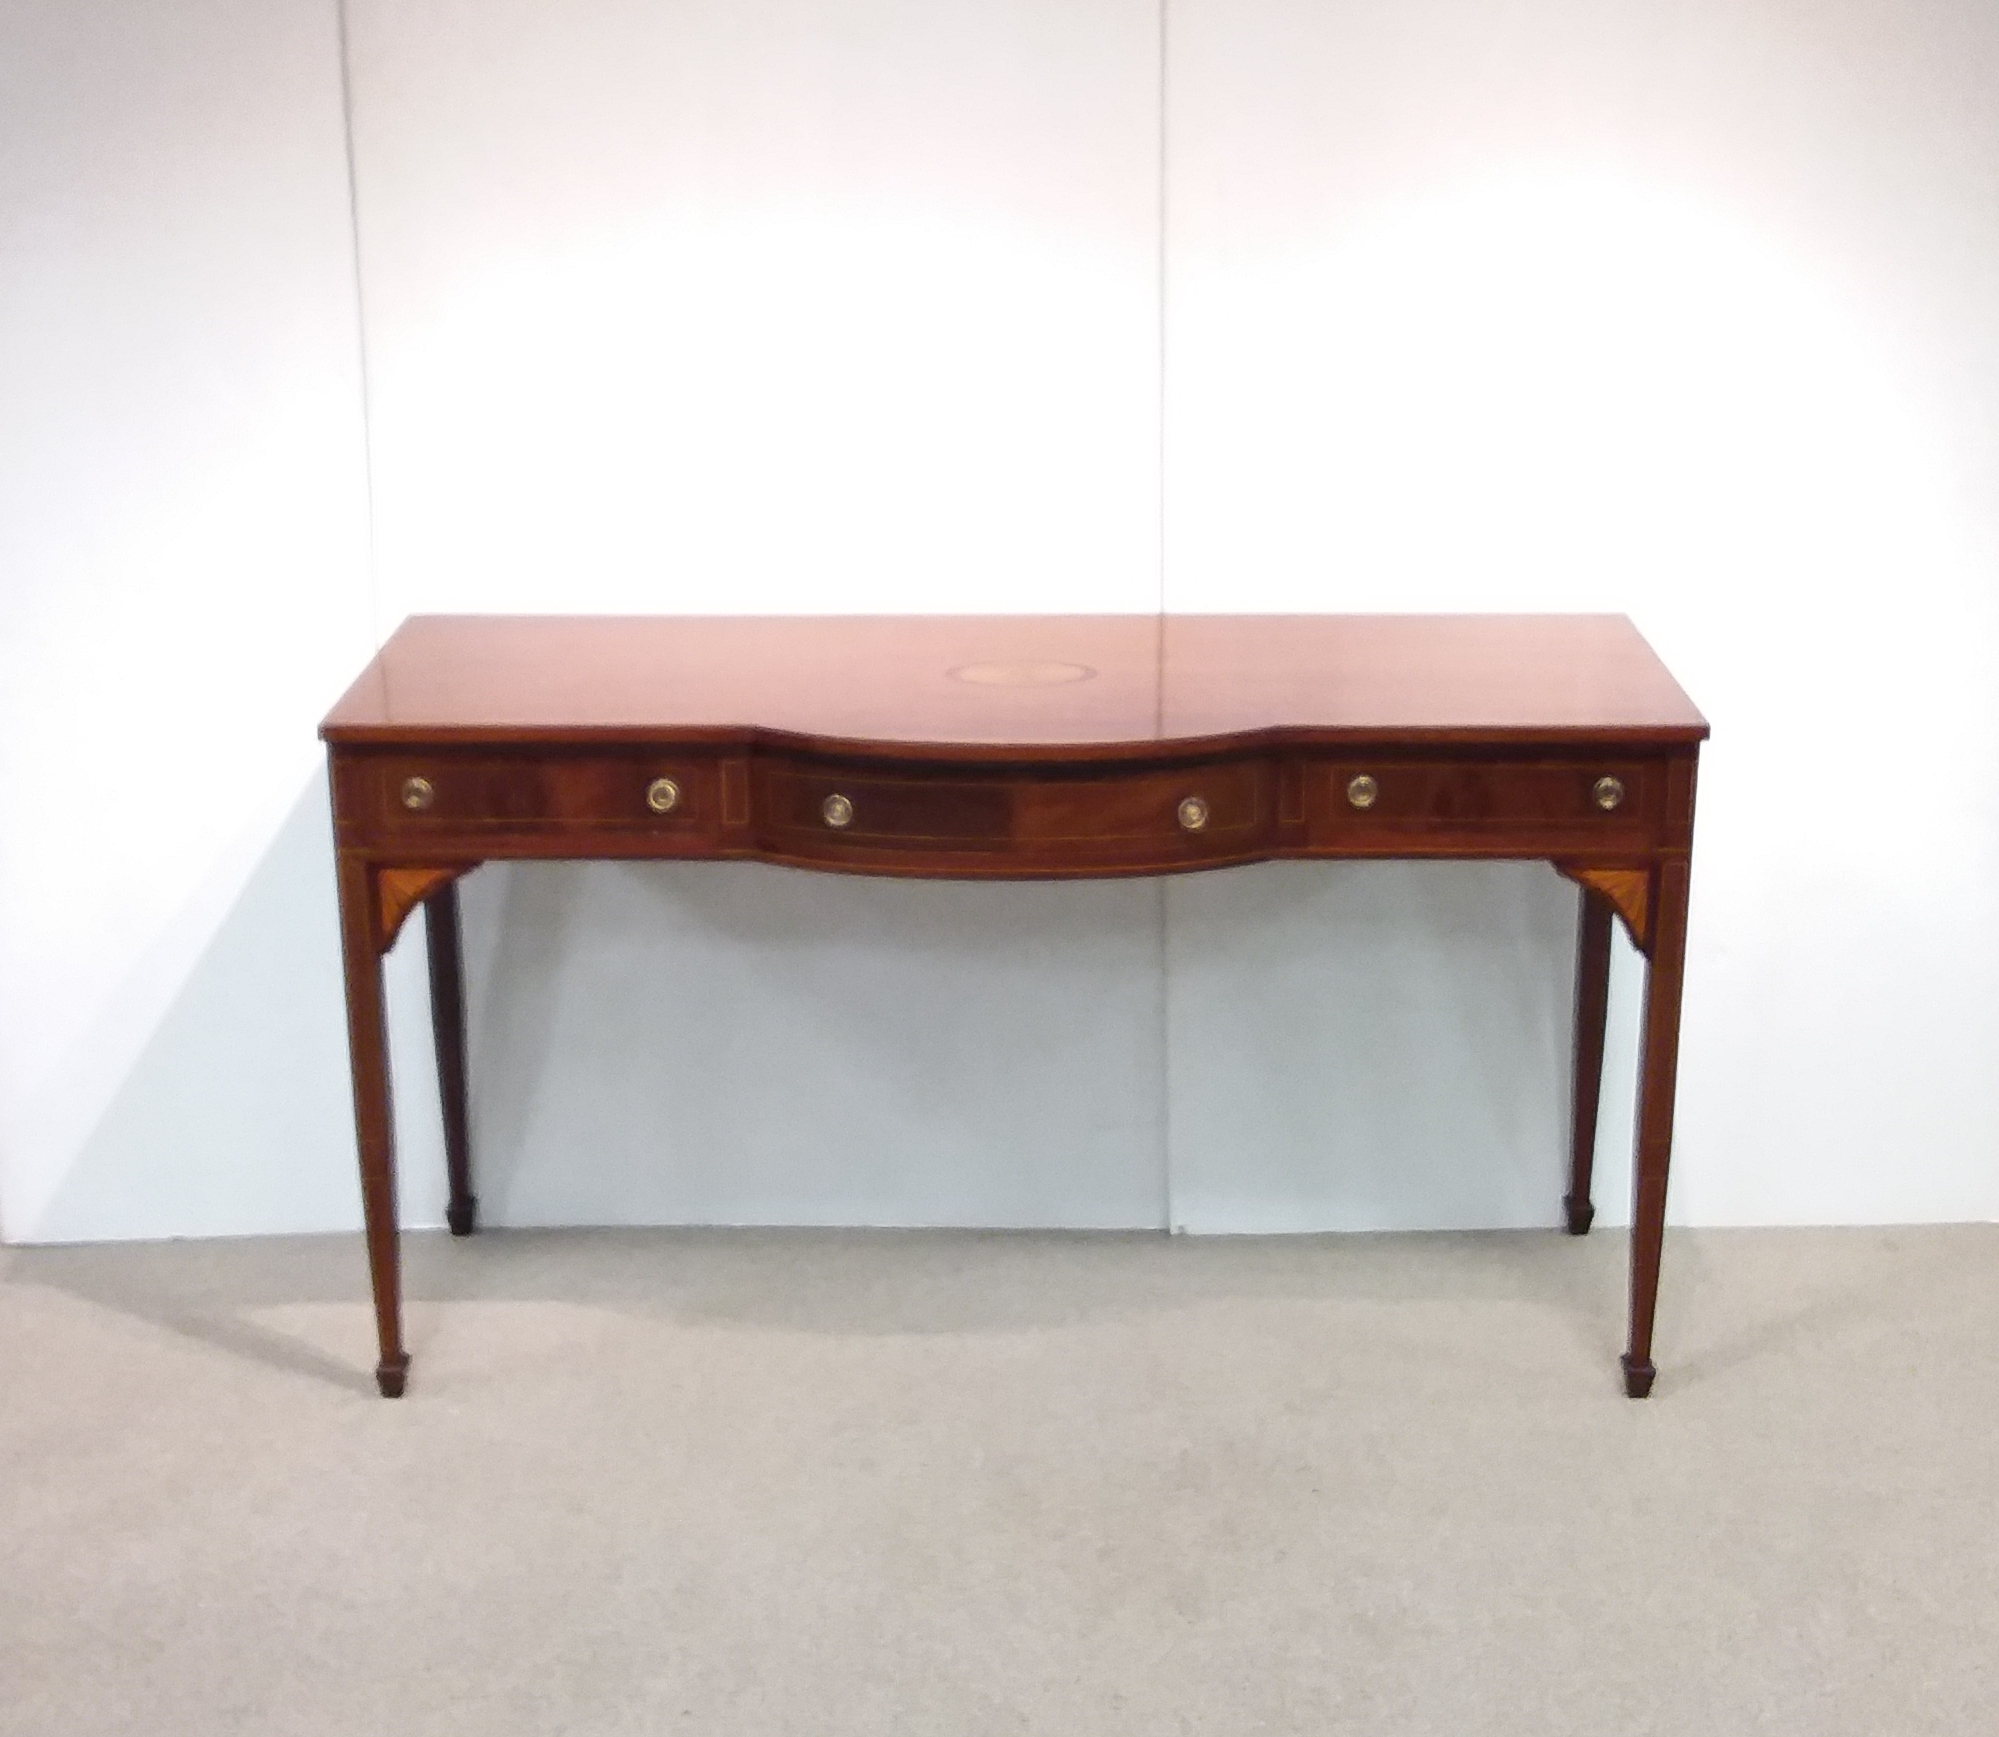 Antique_Edwardian_Style_Console_Table